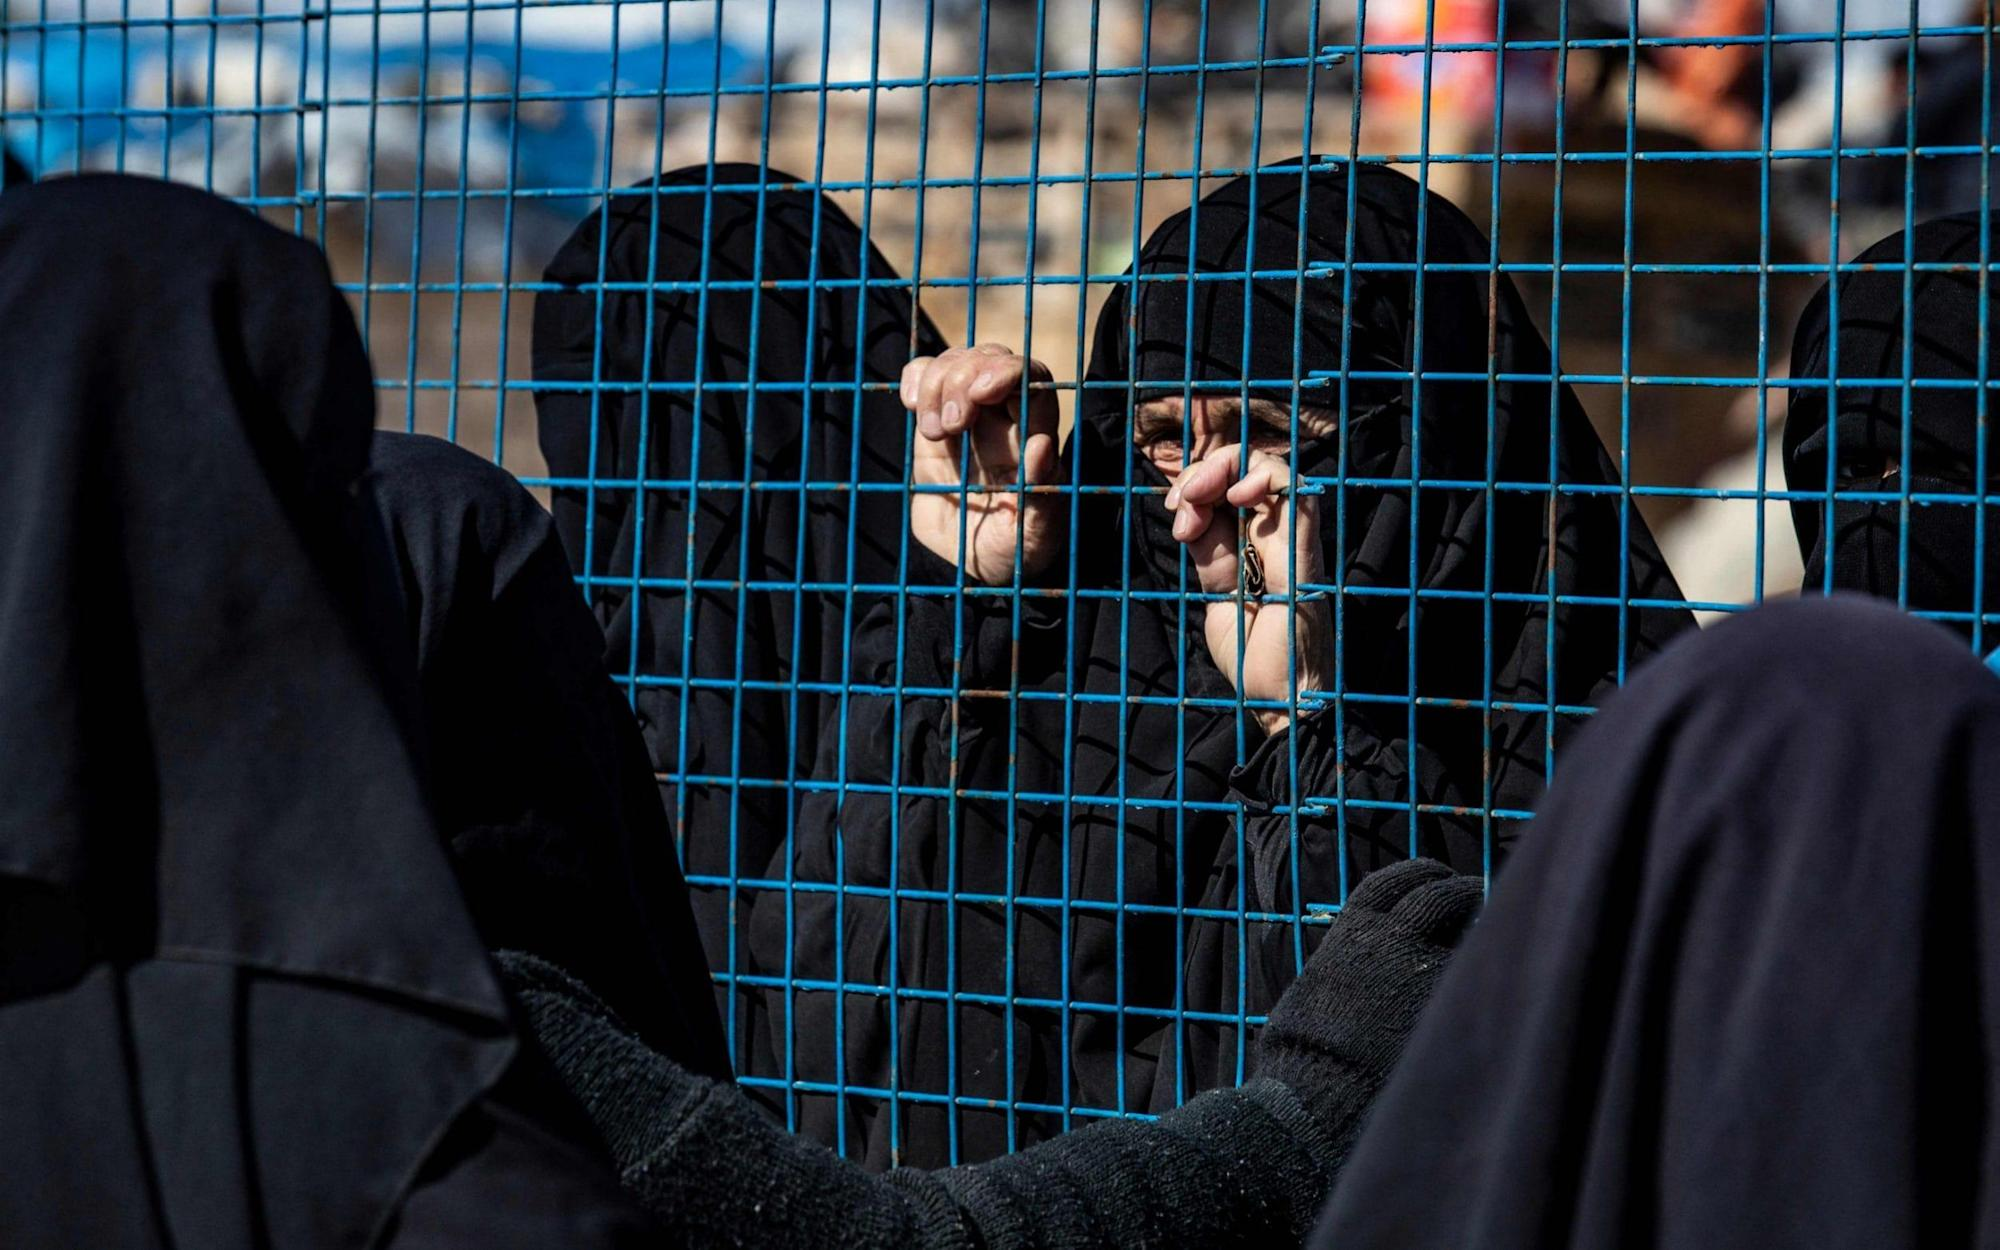 Ten French women who joined IS go on hunger strike in Syria camp